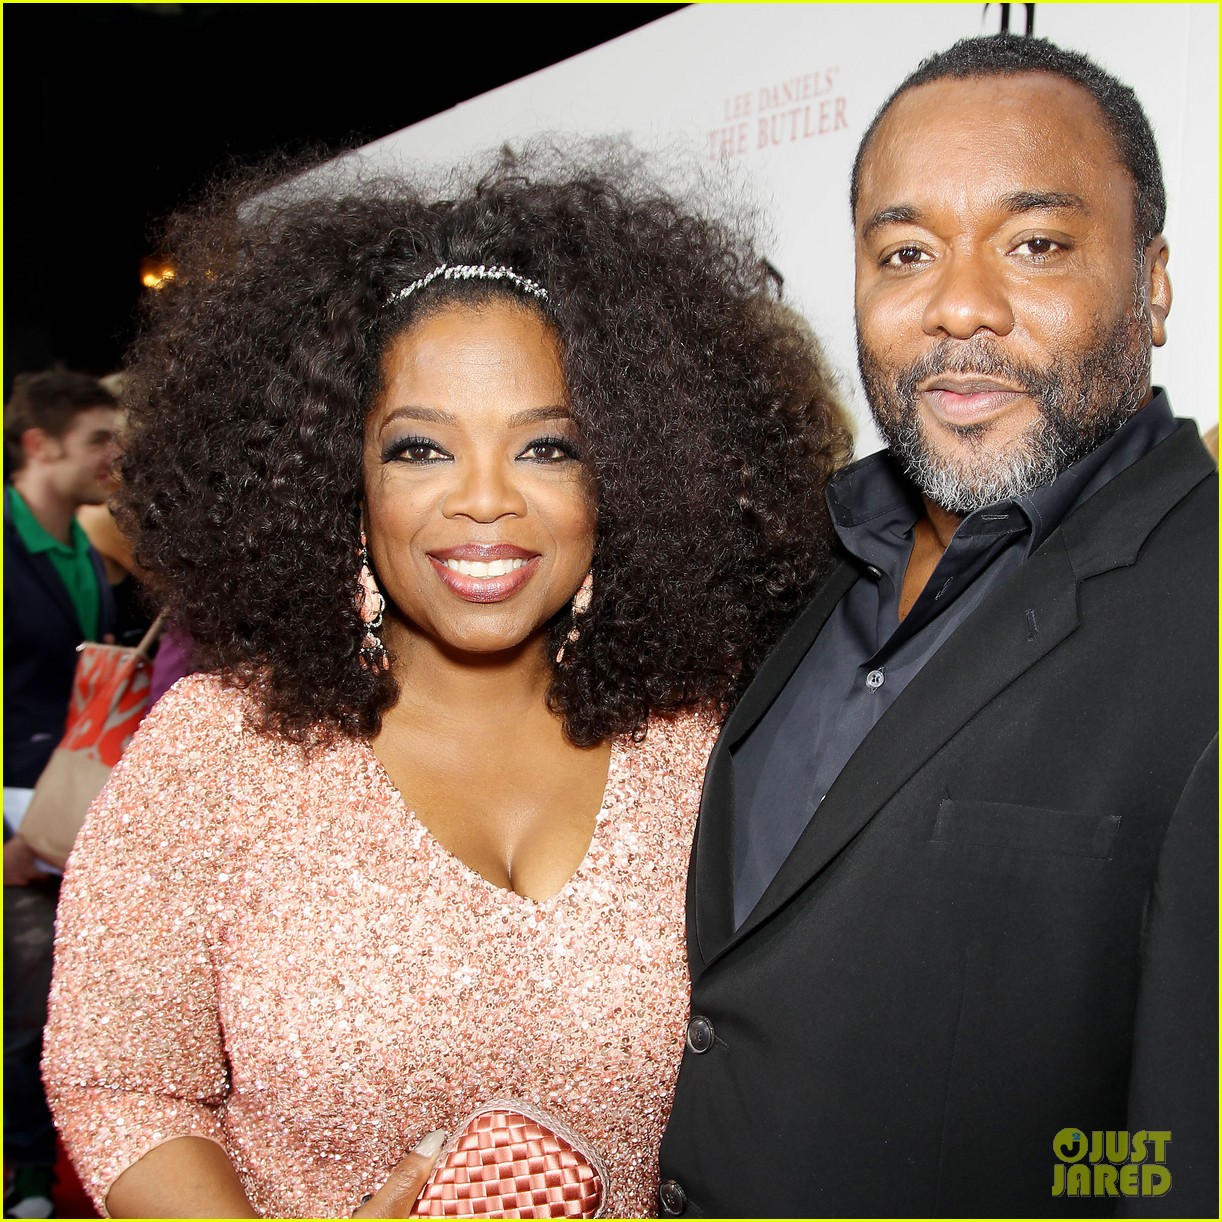 forest whitaker oprah winfrey the butler nyc premiere 18